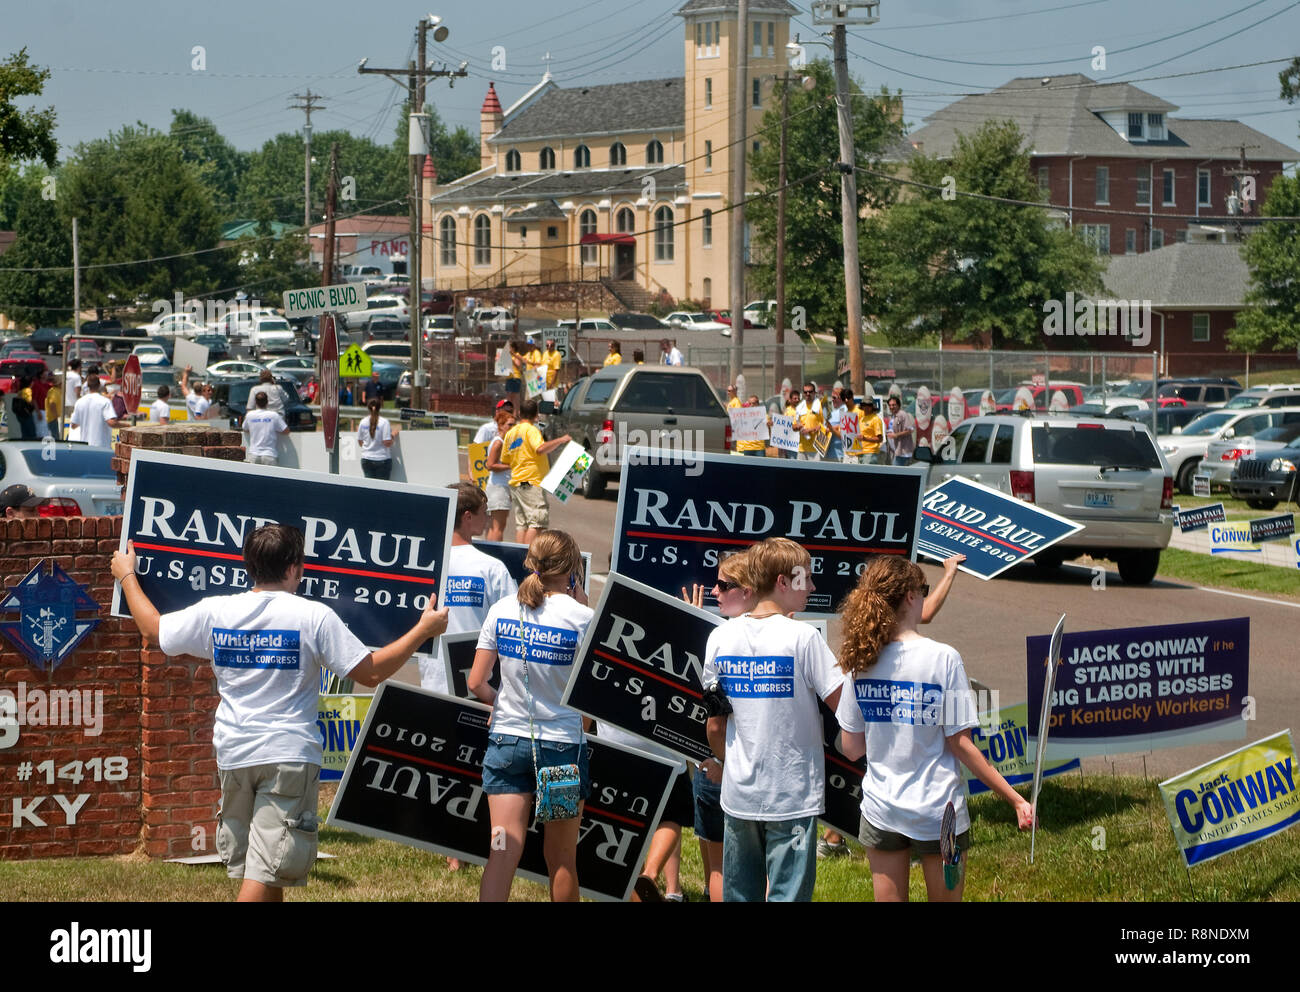 Supporters of Republican Senate candidate Rand Paul line the road Aug. 7, 2010 at the Fancy Farm picnic and political rally in Fancy Farm, Kentucky. - Stock Image